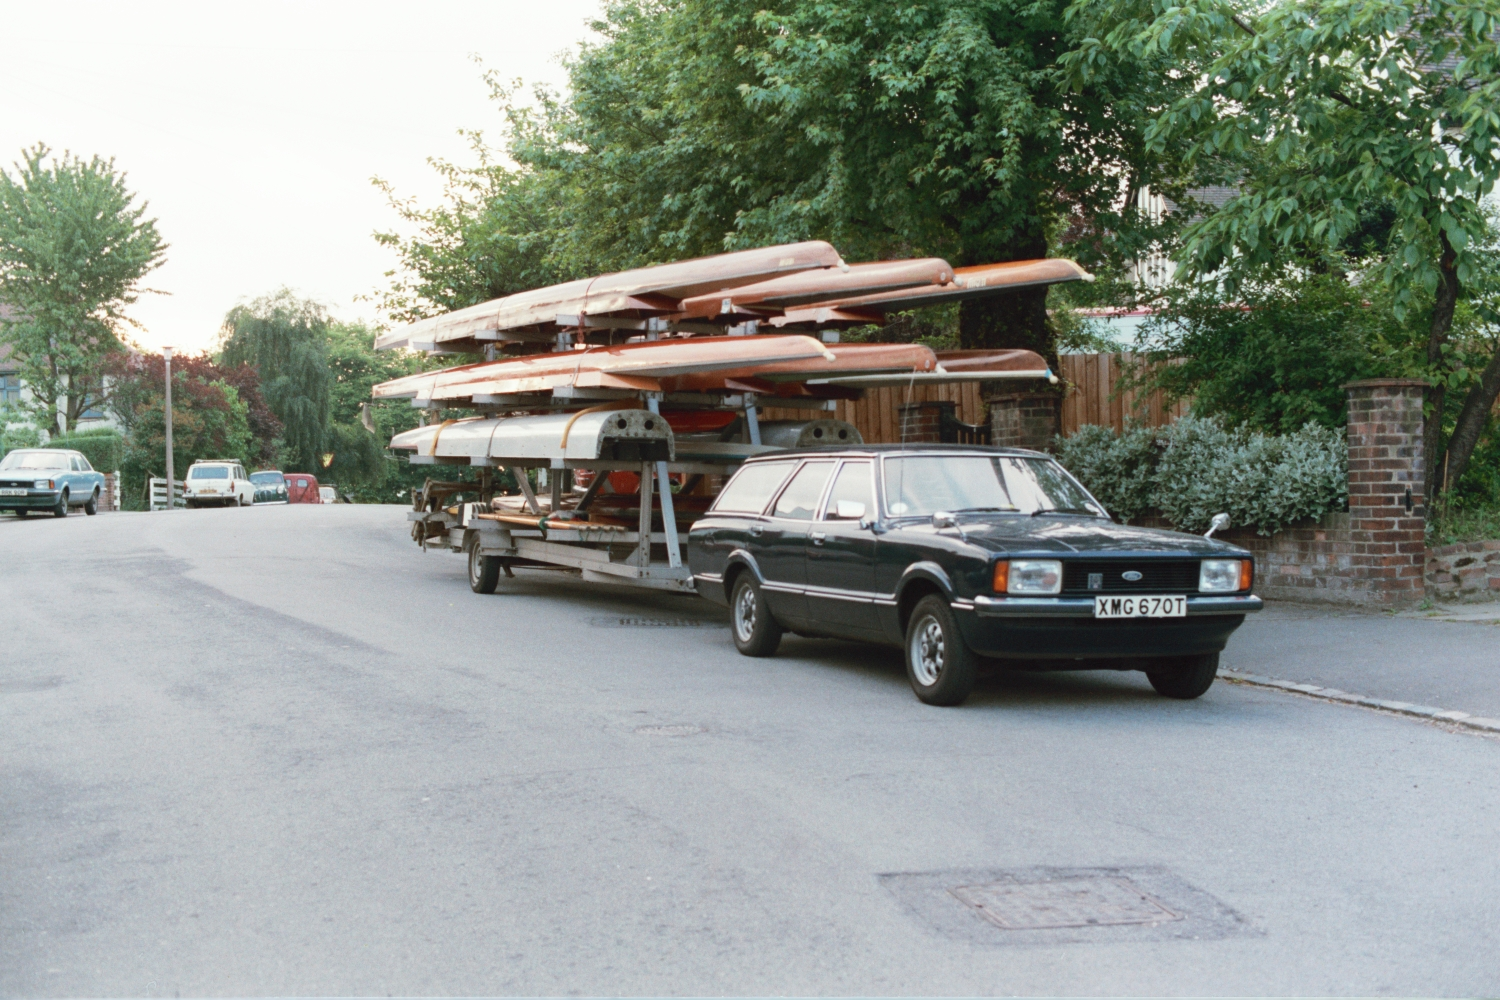 Fred Shearer's Ford Cortina estate, and the Lea Rowing Club boat trailer